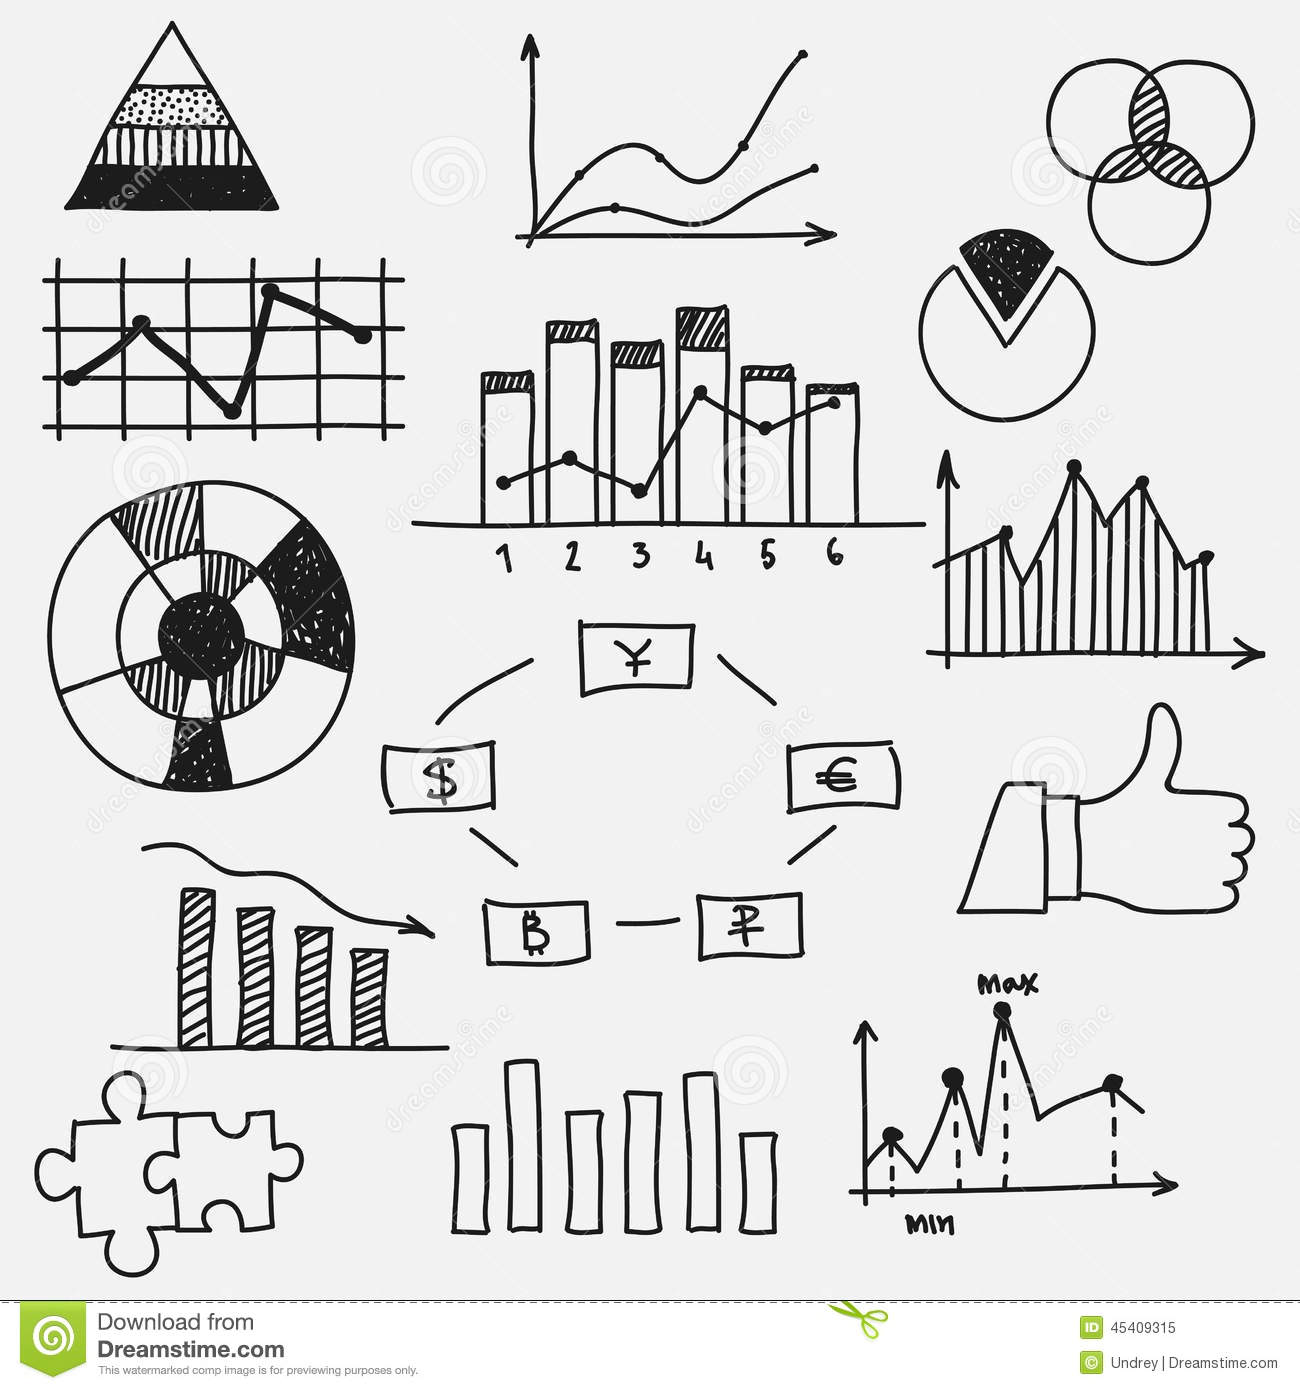 Drawing Line Graphs By Hand : Hand drawn doodle business sketches finance stock vector